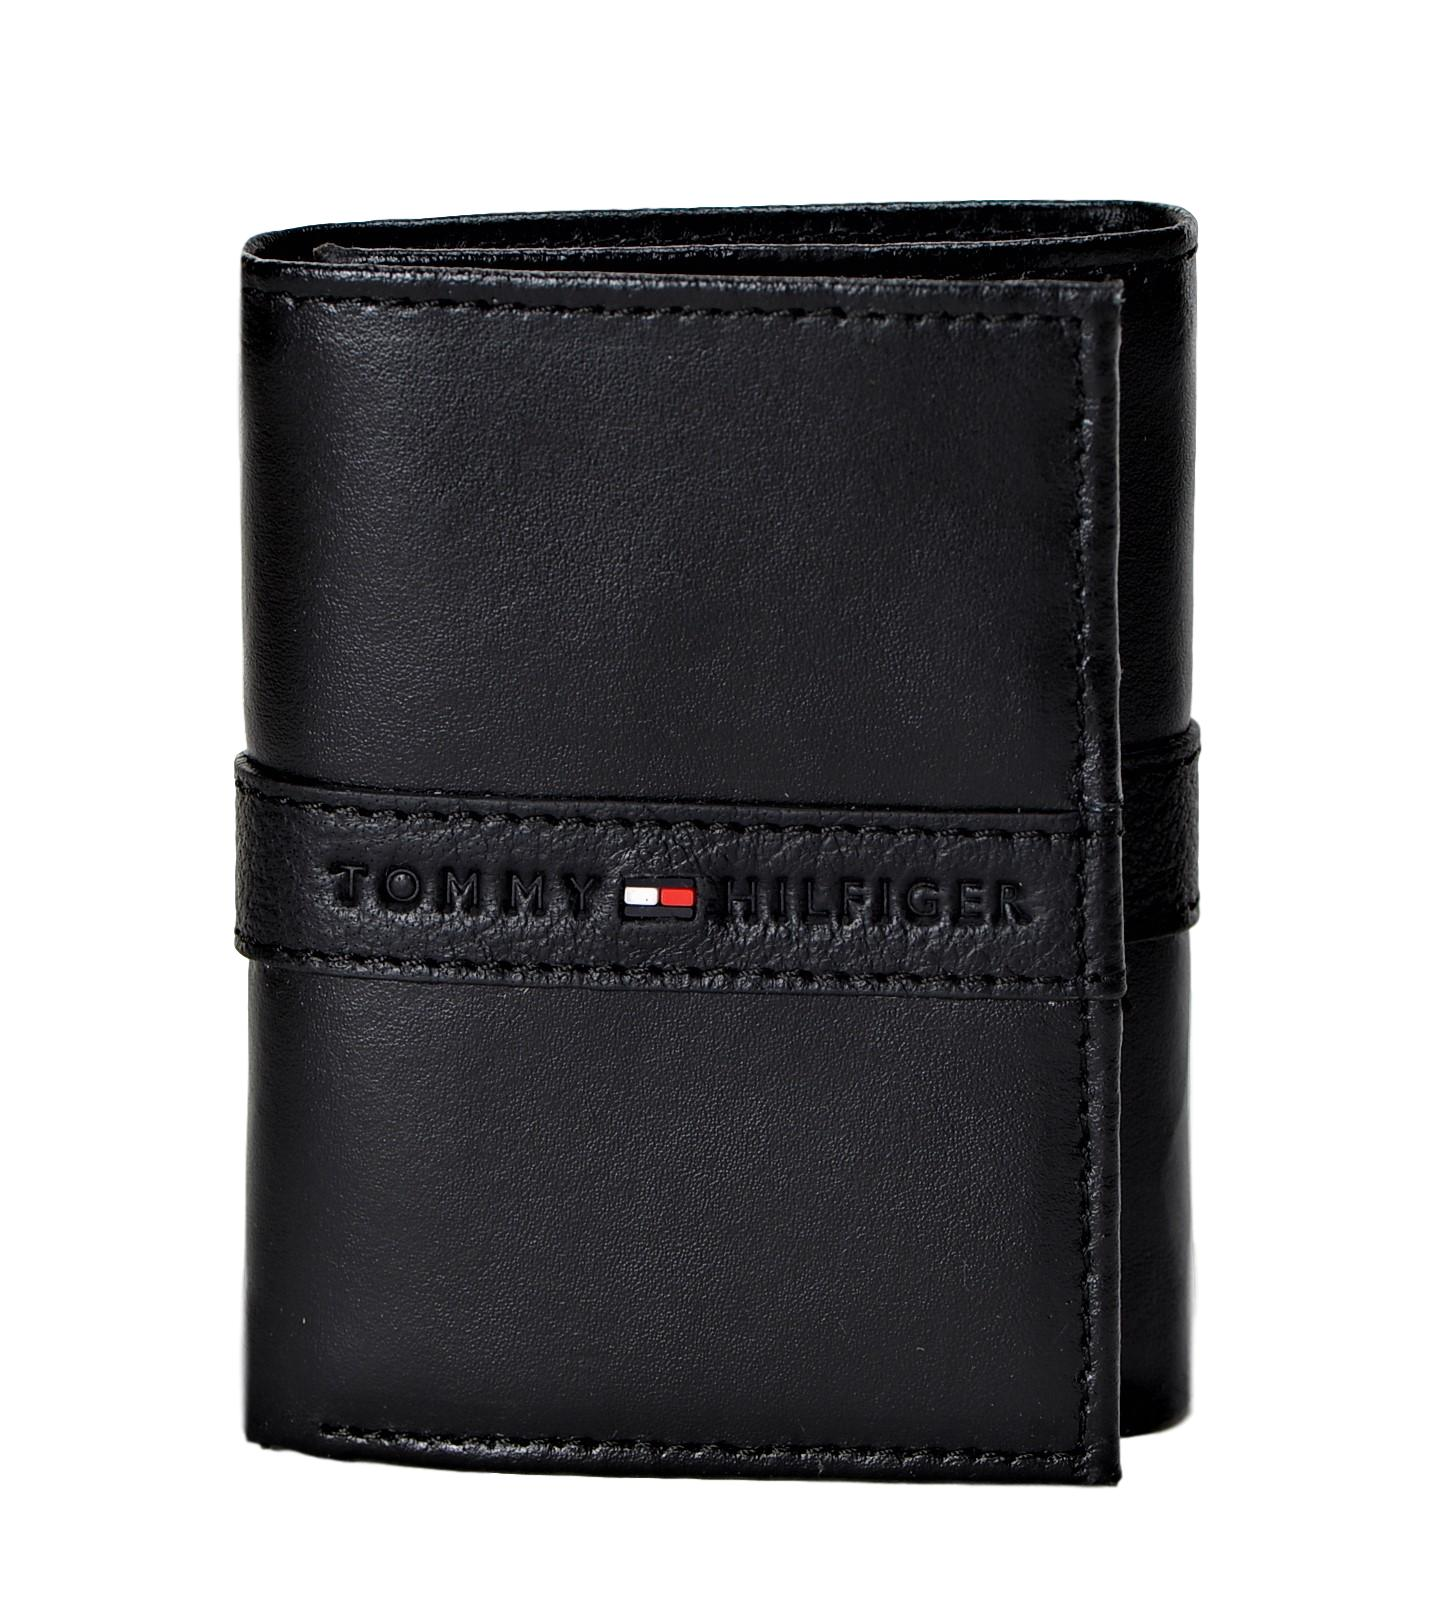 tommy hilfiger men s rfid block wallet leather trifold cards id